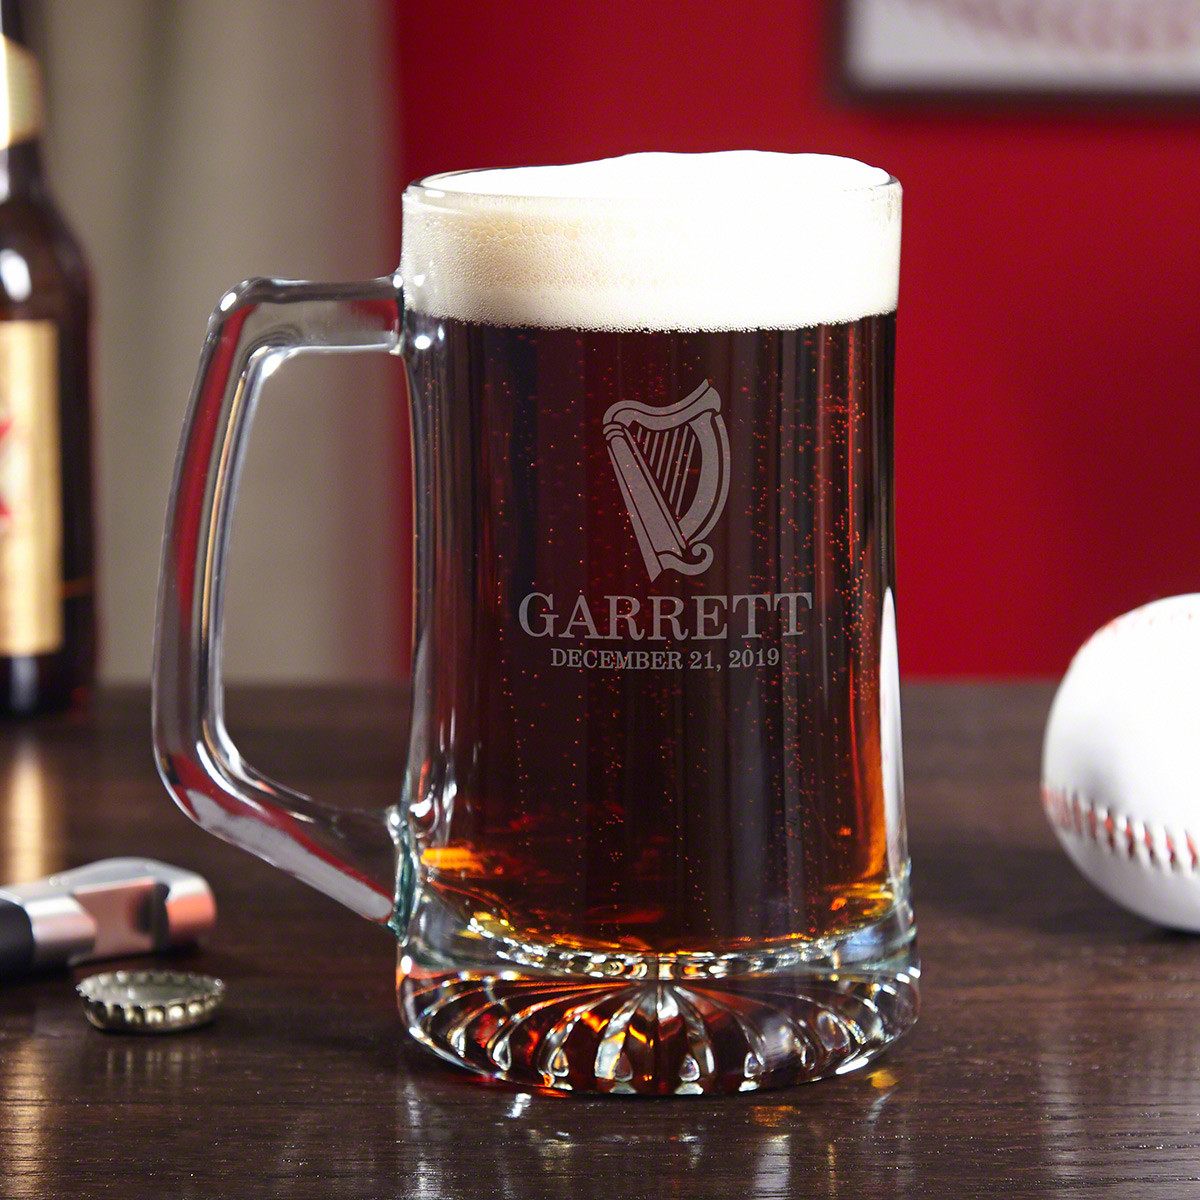 You can practically hear the glistening melodies of the legendary Celtic Harp when you drink from this handsome personalized glass beer mug. Calling to mind the emerald green hills of County Cork, these engraved glass steins are designed especially for t #mug